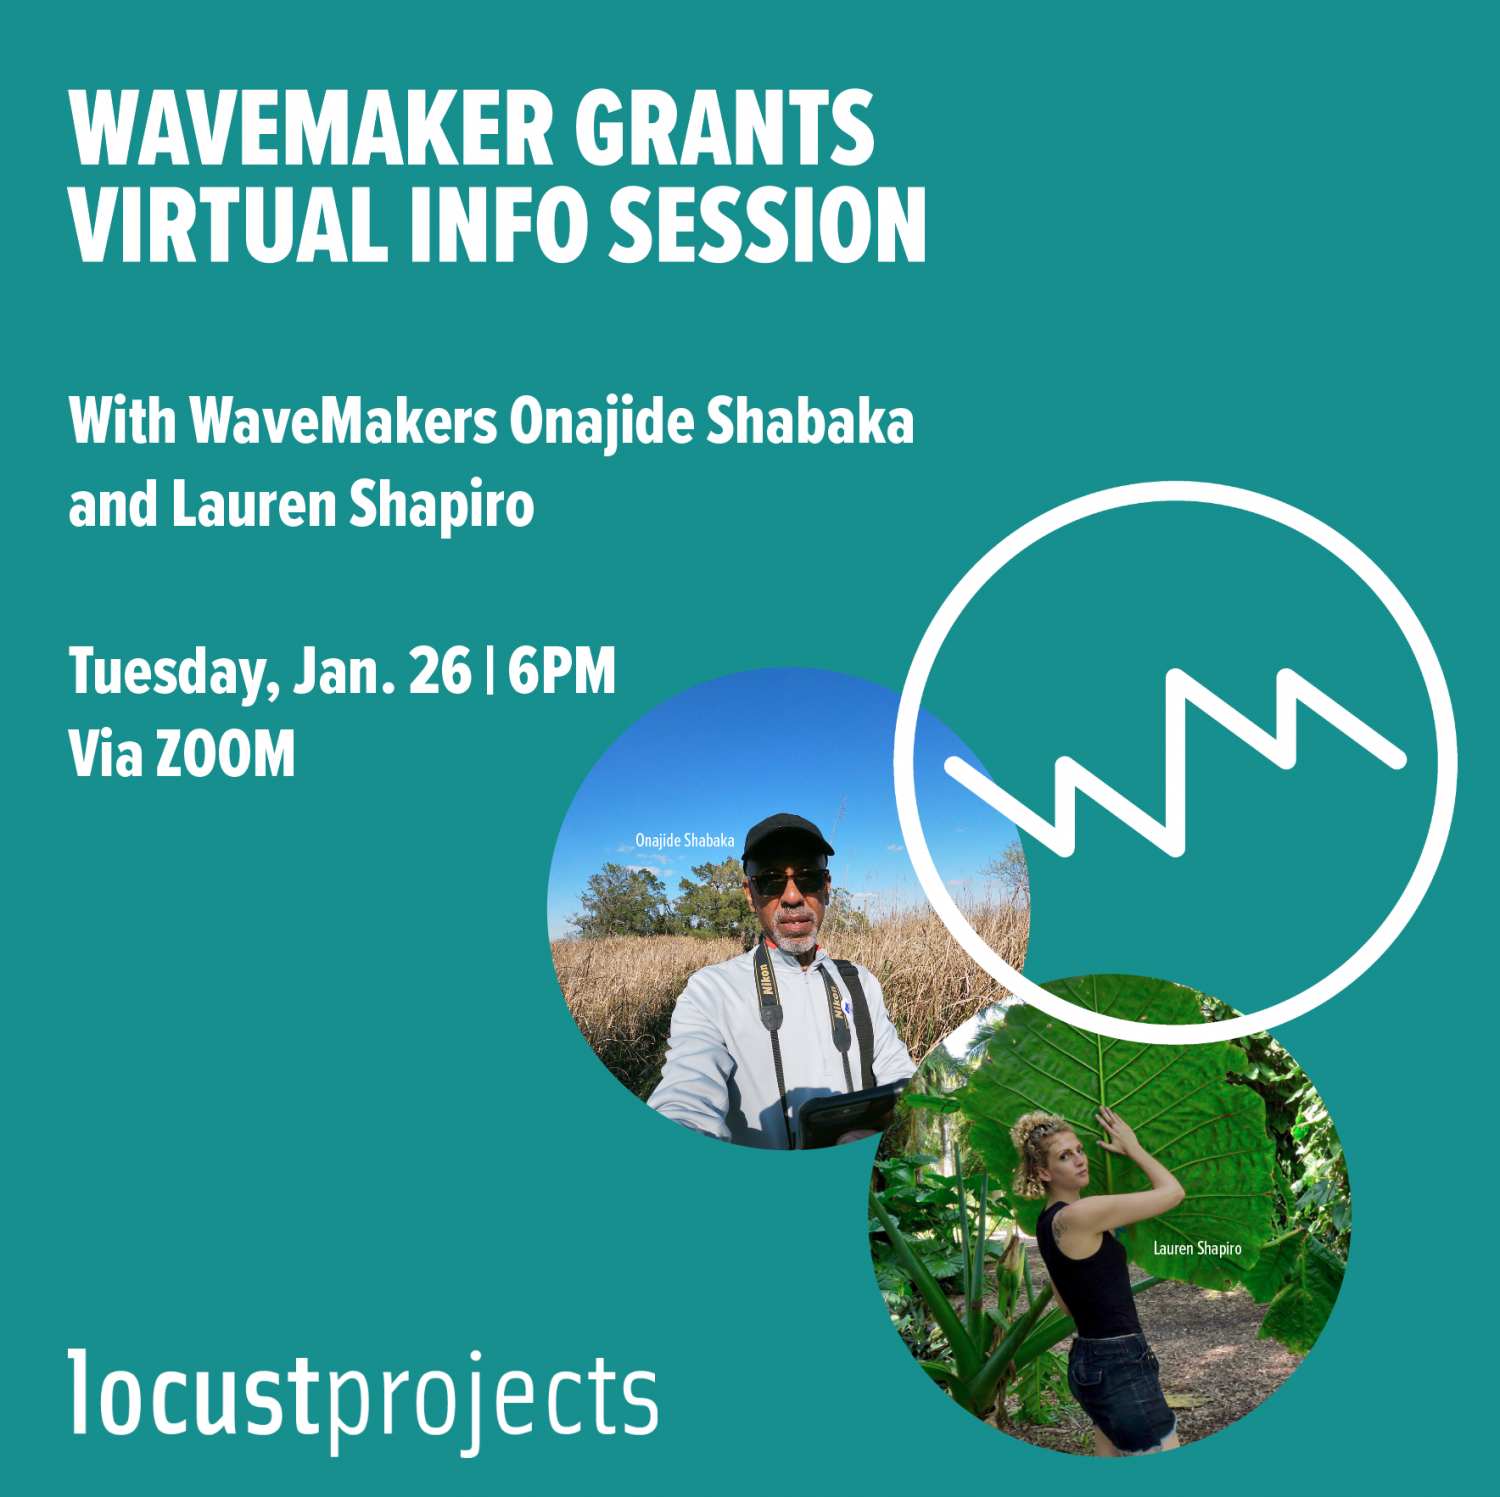 WaveMaker 2021 Virtual Info Session #1